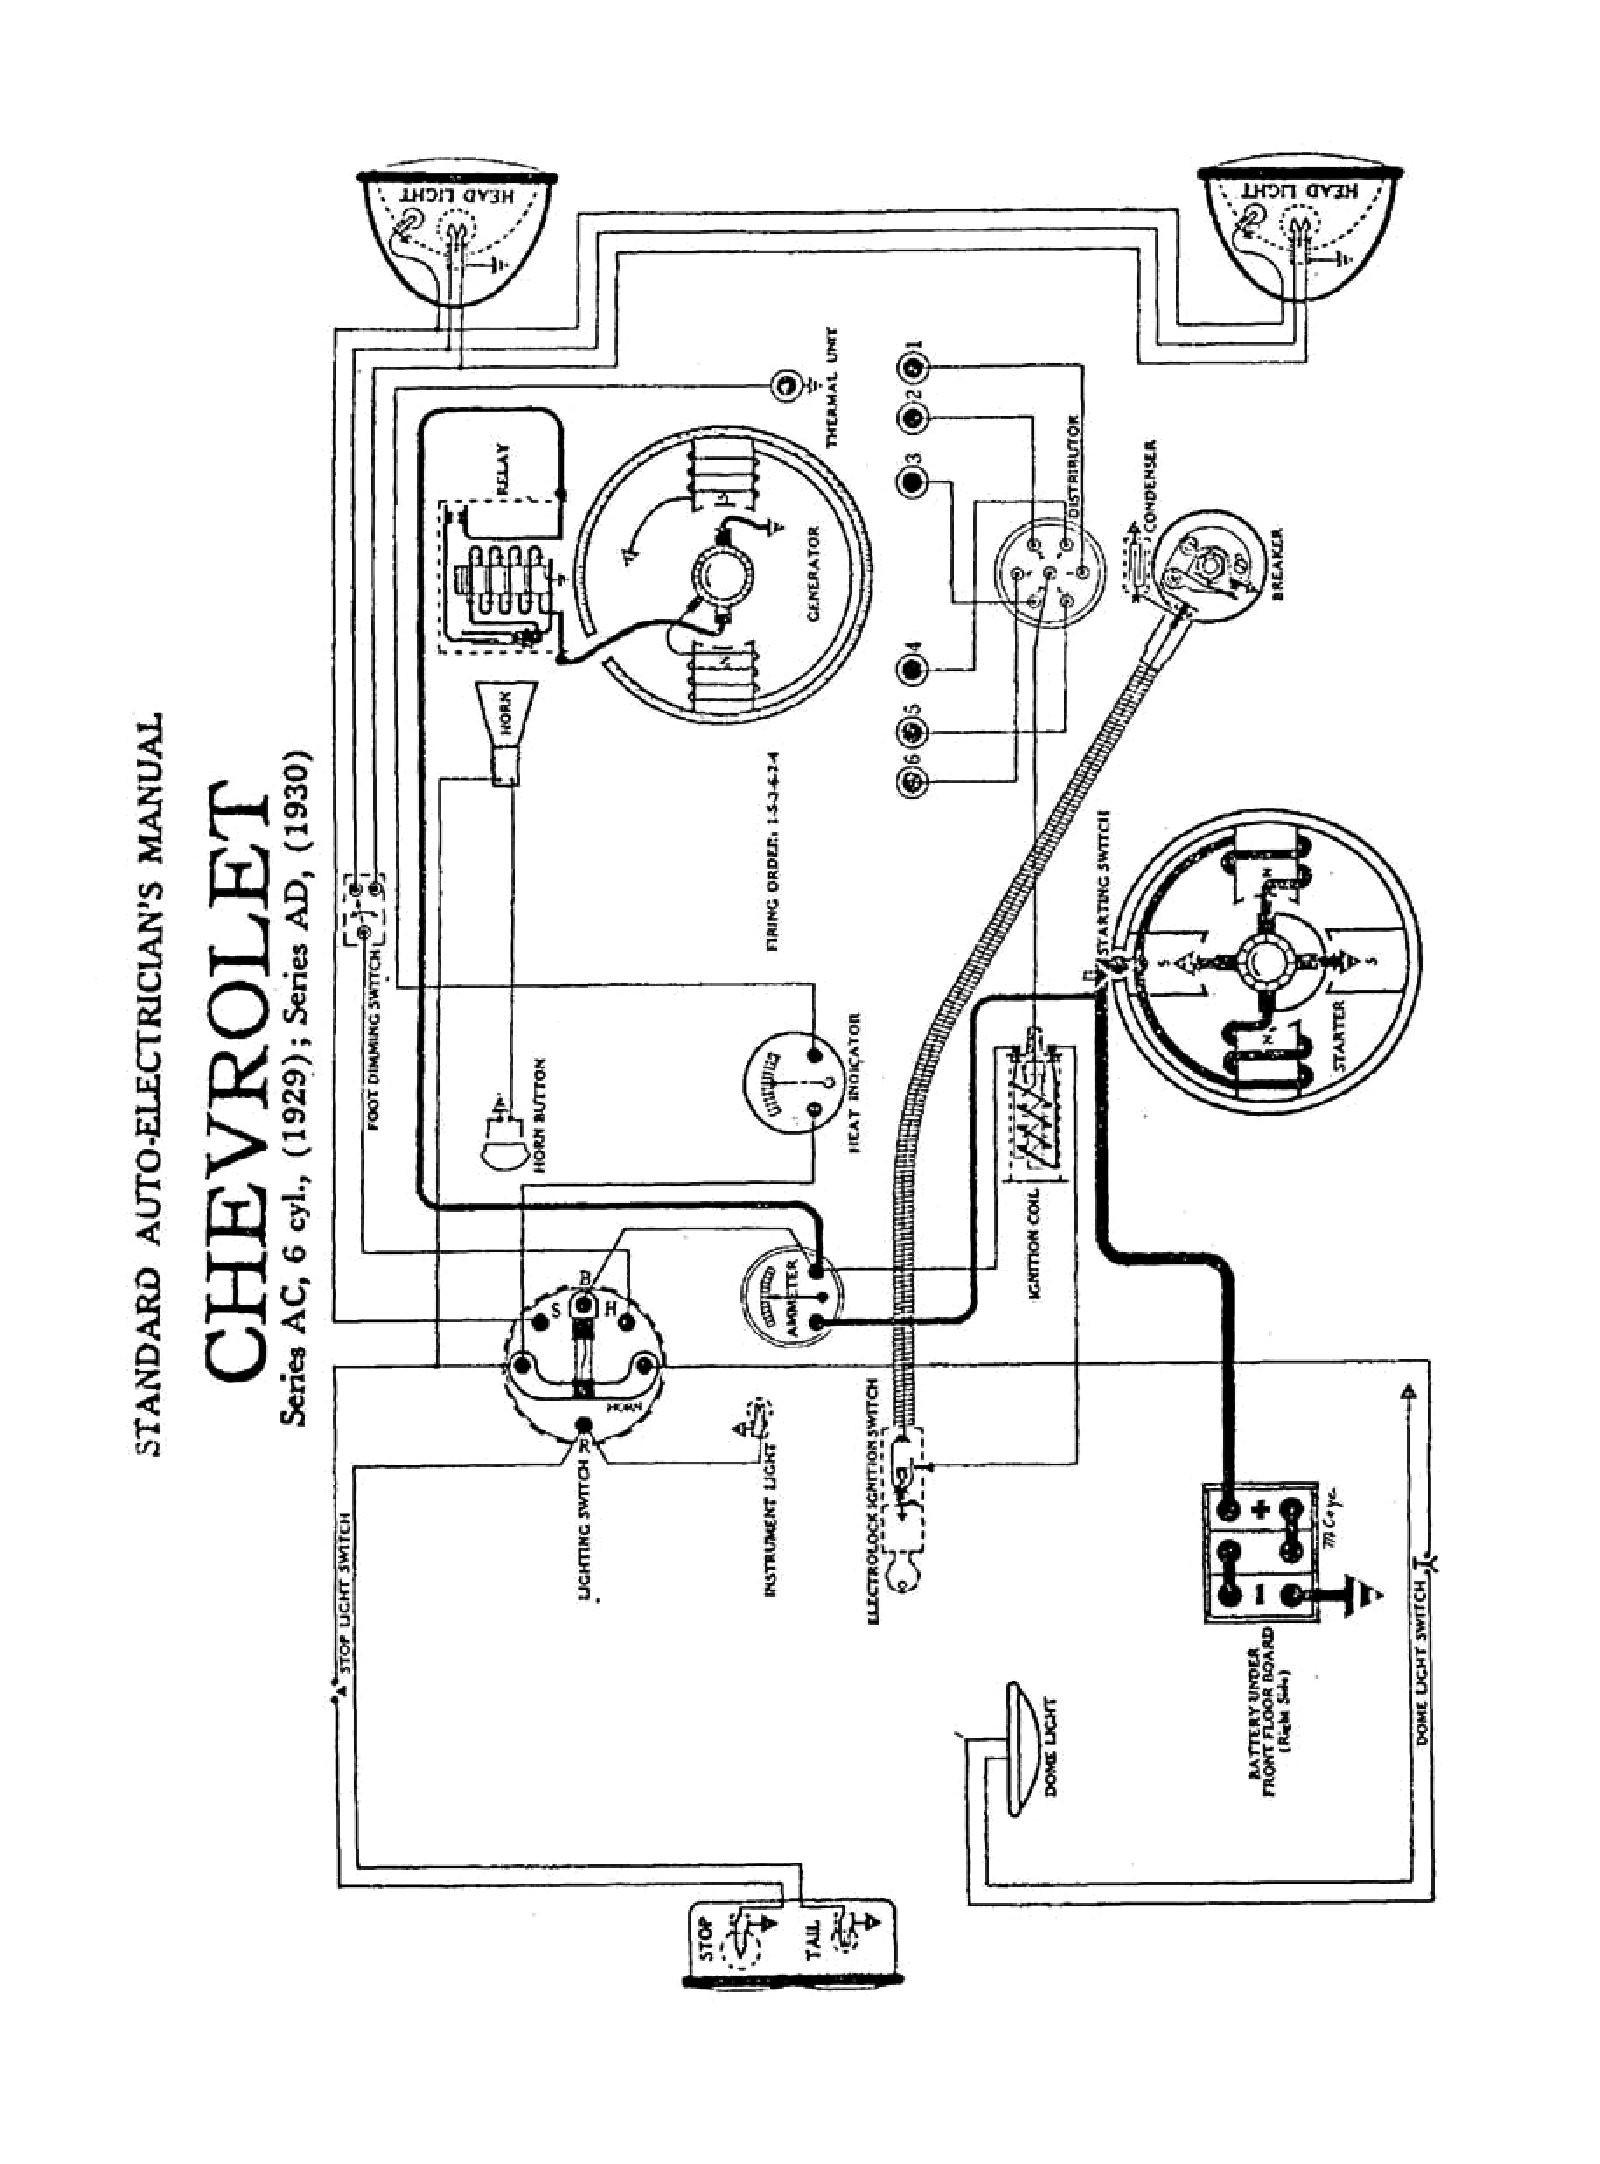 piaa fog lights wiring diagram baldor motors 3 phase 510 great installation of awesome light schematic gallery best harness